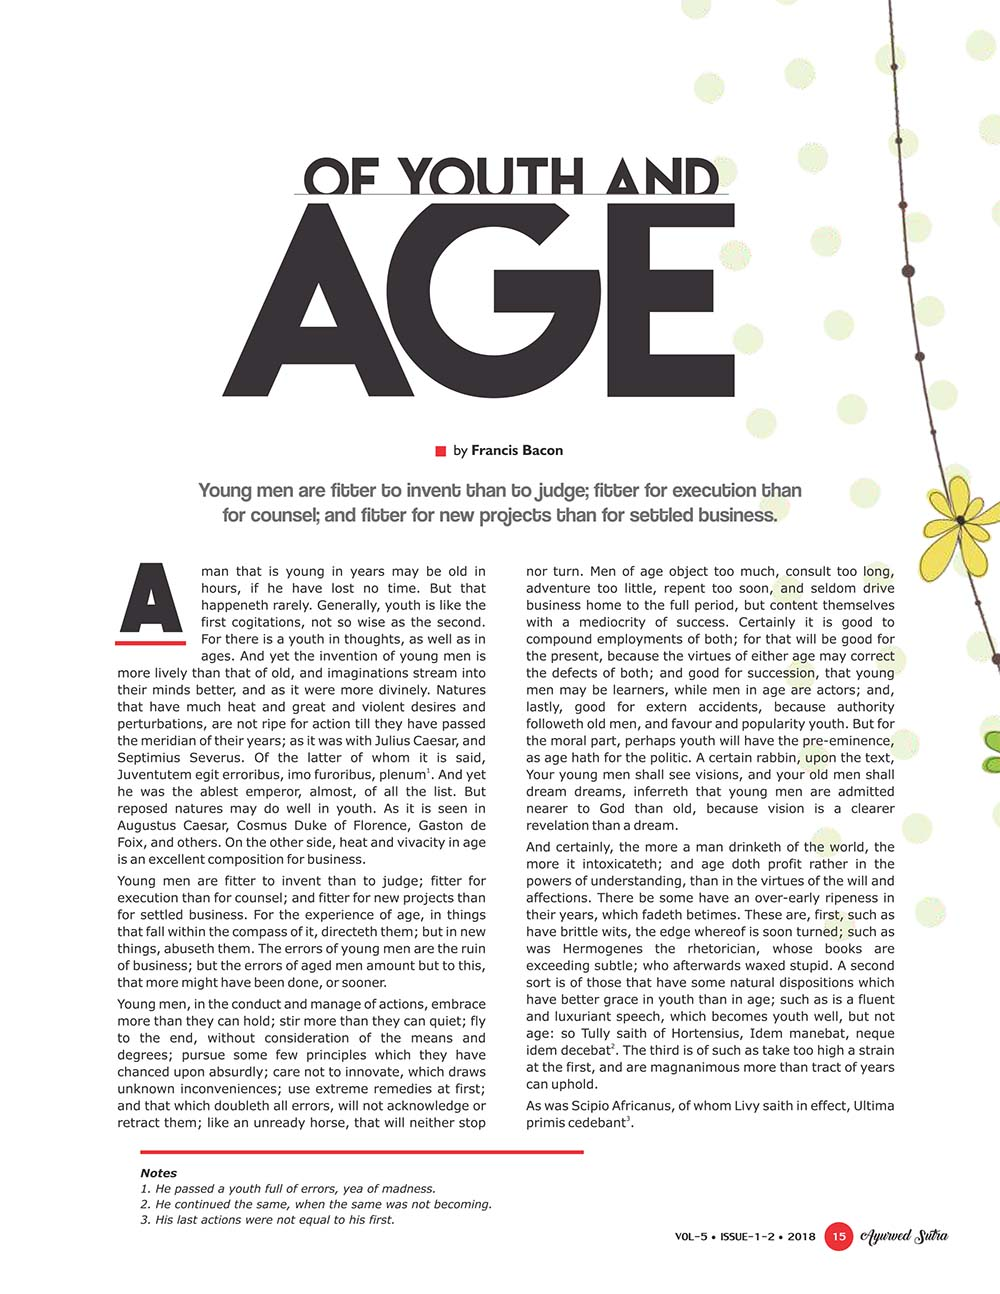 Ayurvedsutra Vol 05 issue 01 02 17 - Of Youth and Age